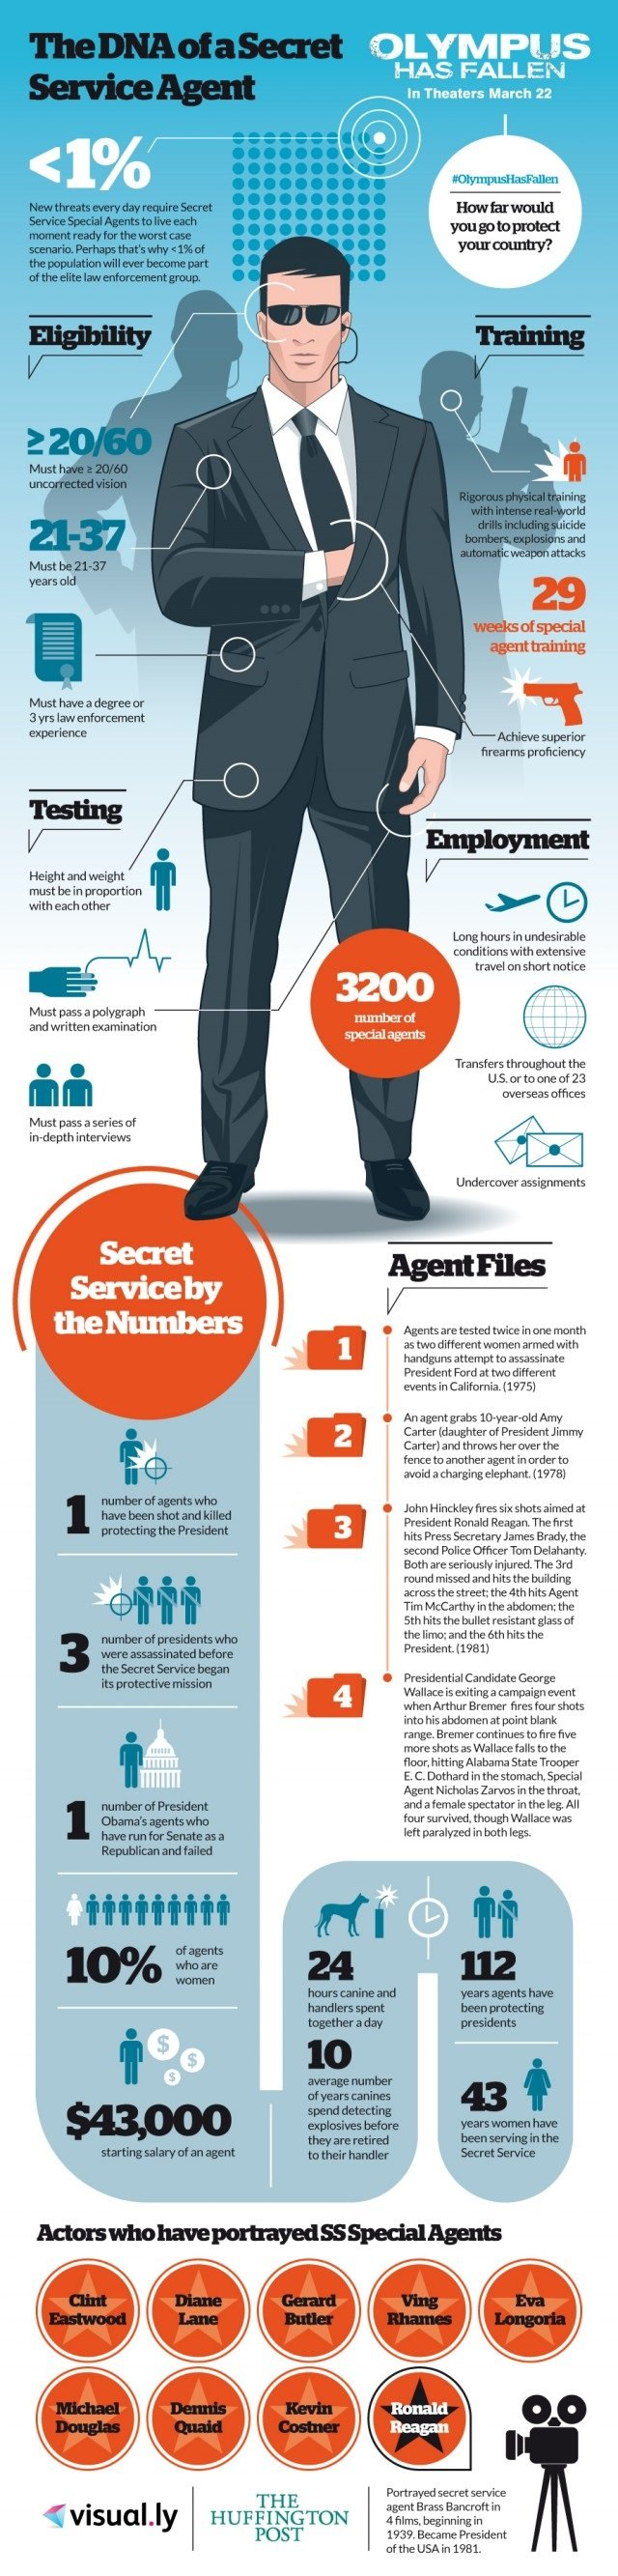 The DNA of a secret service agent #Infographic